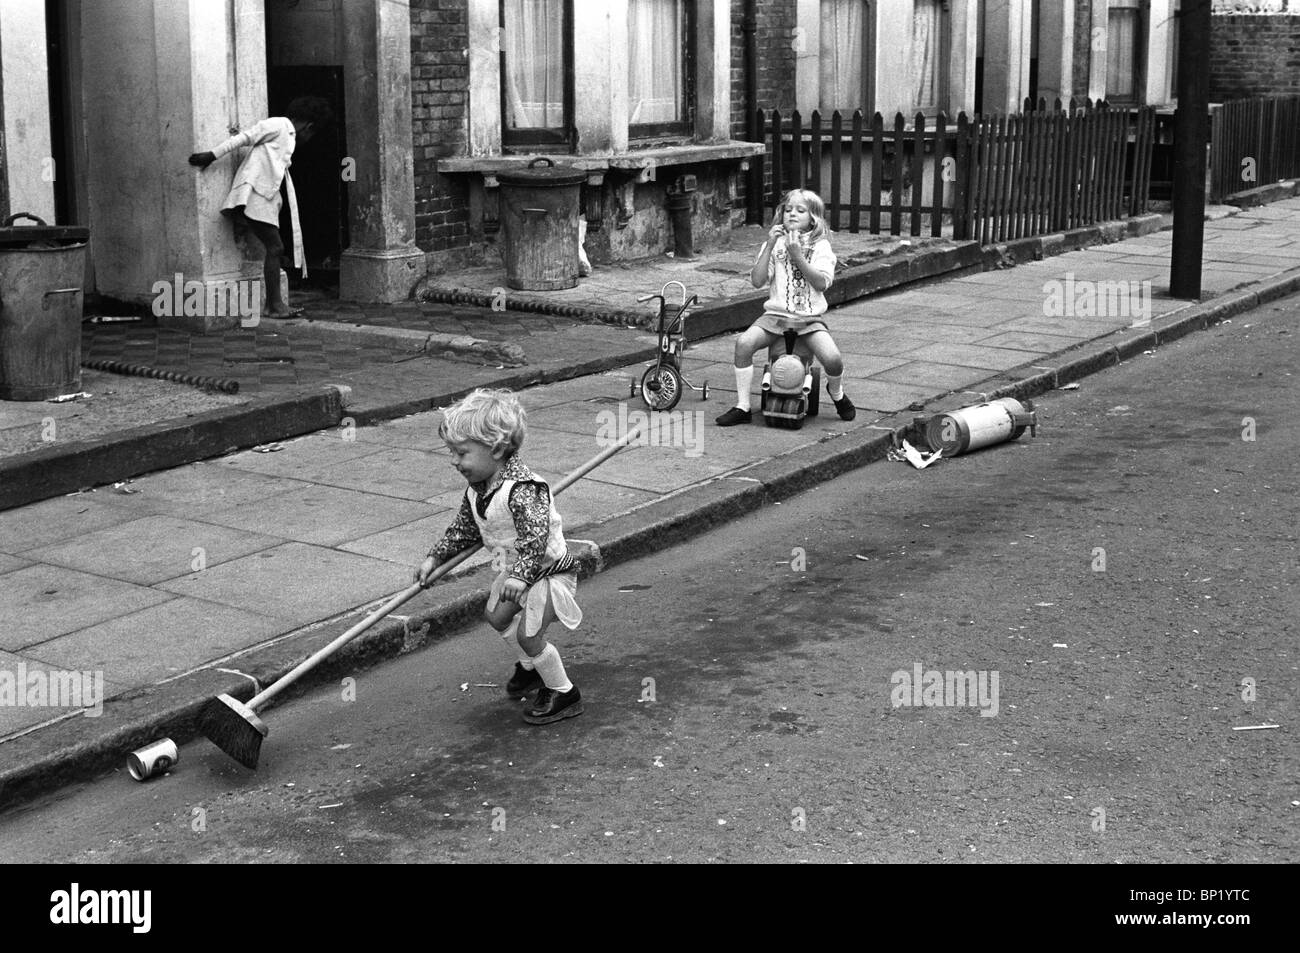 Kids playing in the street Elephant and Castle. South London 1970s Britain. HOMER SYKES - Stock Image